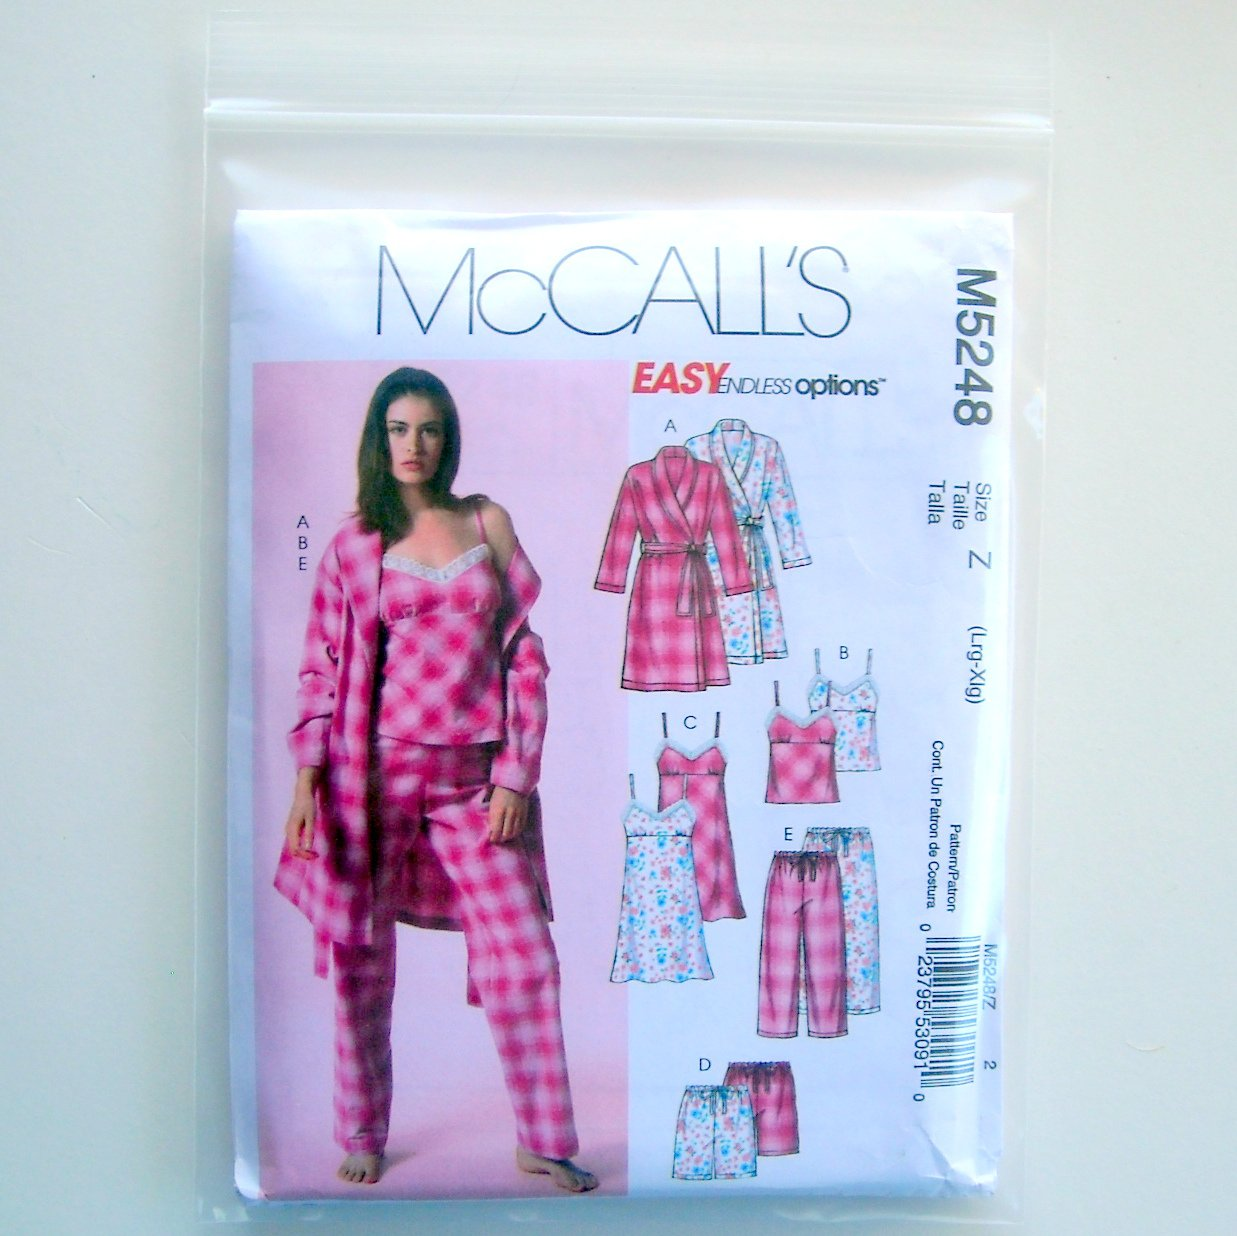 McCalls Easy Misses Robe Belt Top Nightgown Shorts Pants Size Z Lrg - Xlg Sewing Pattern M5248